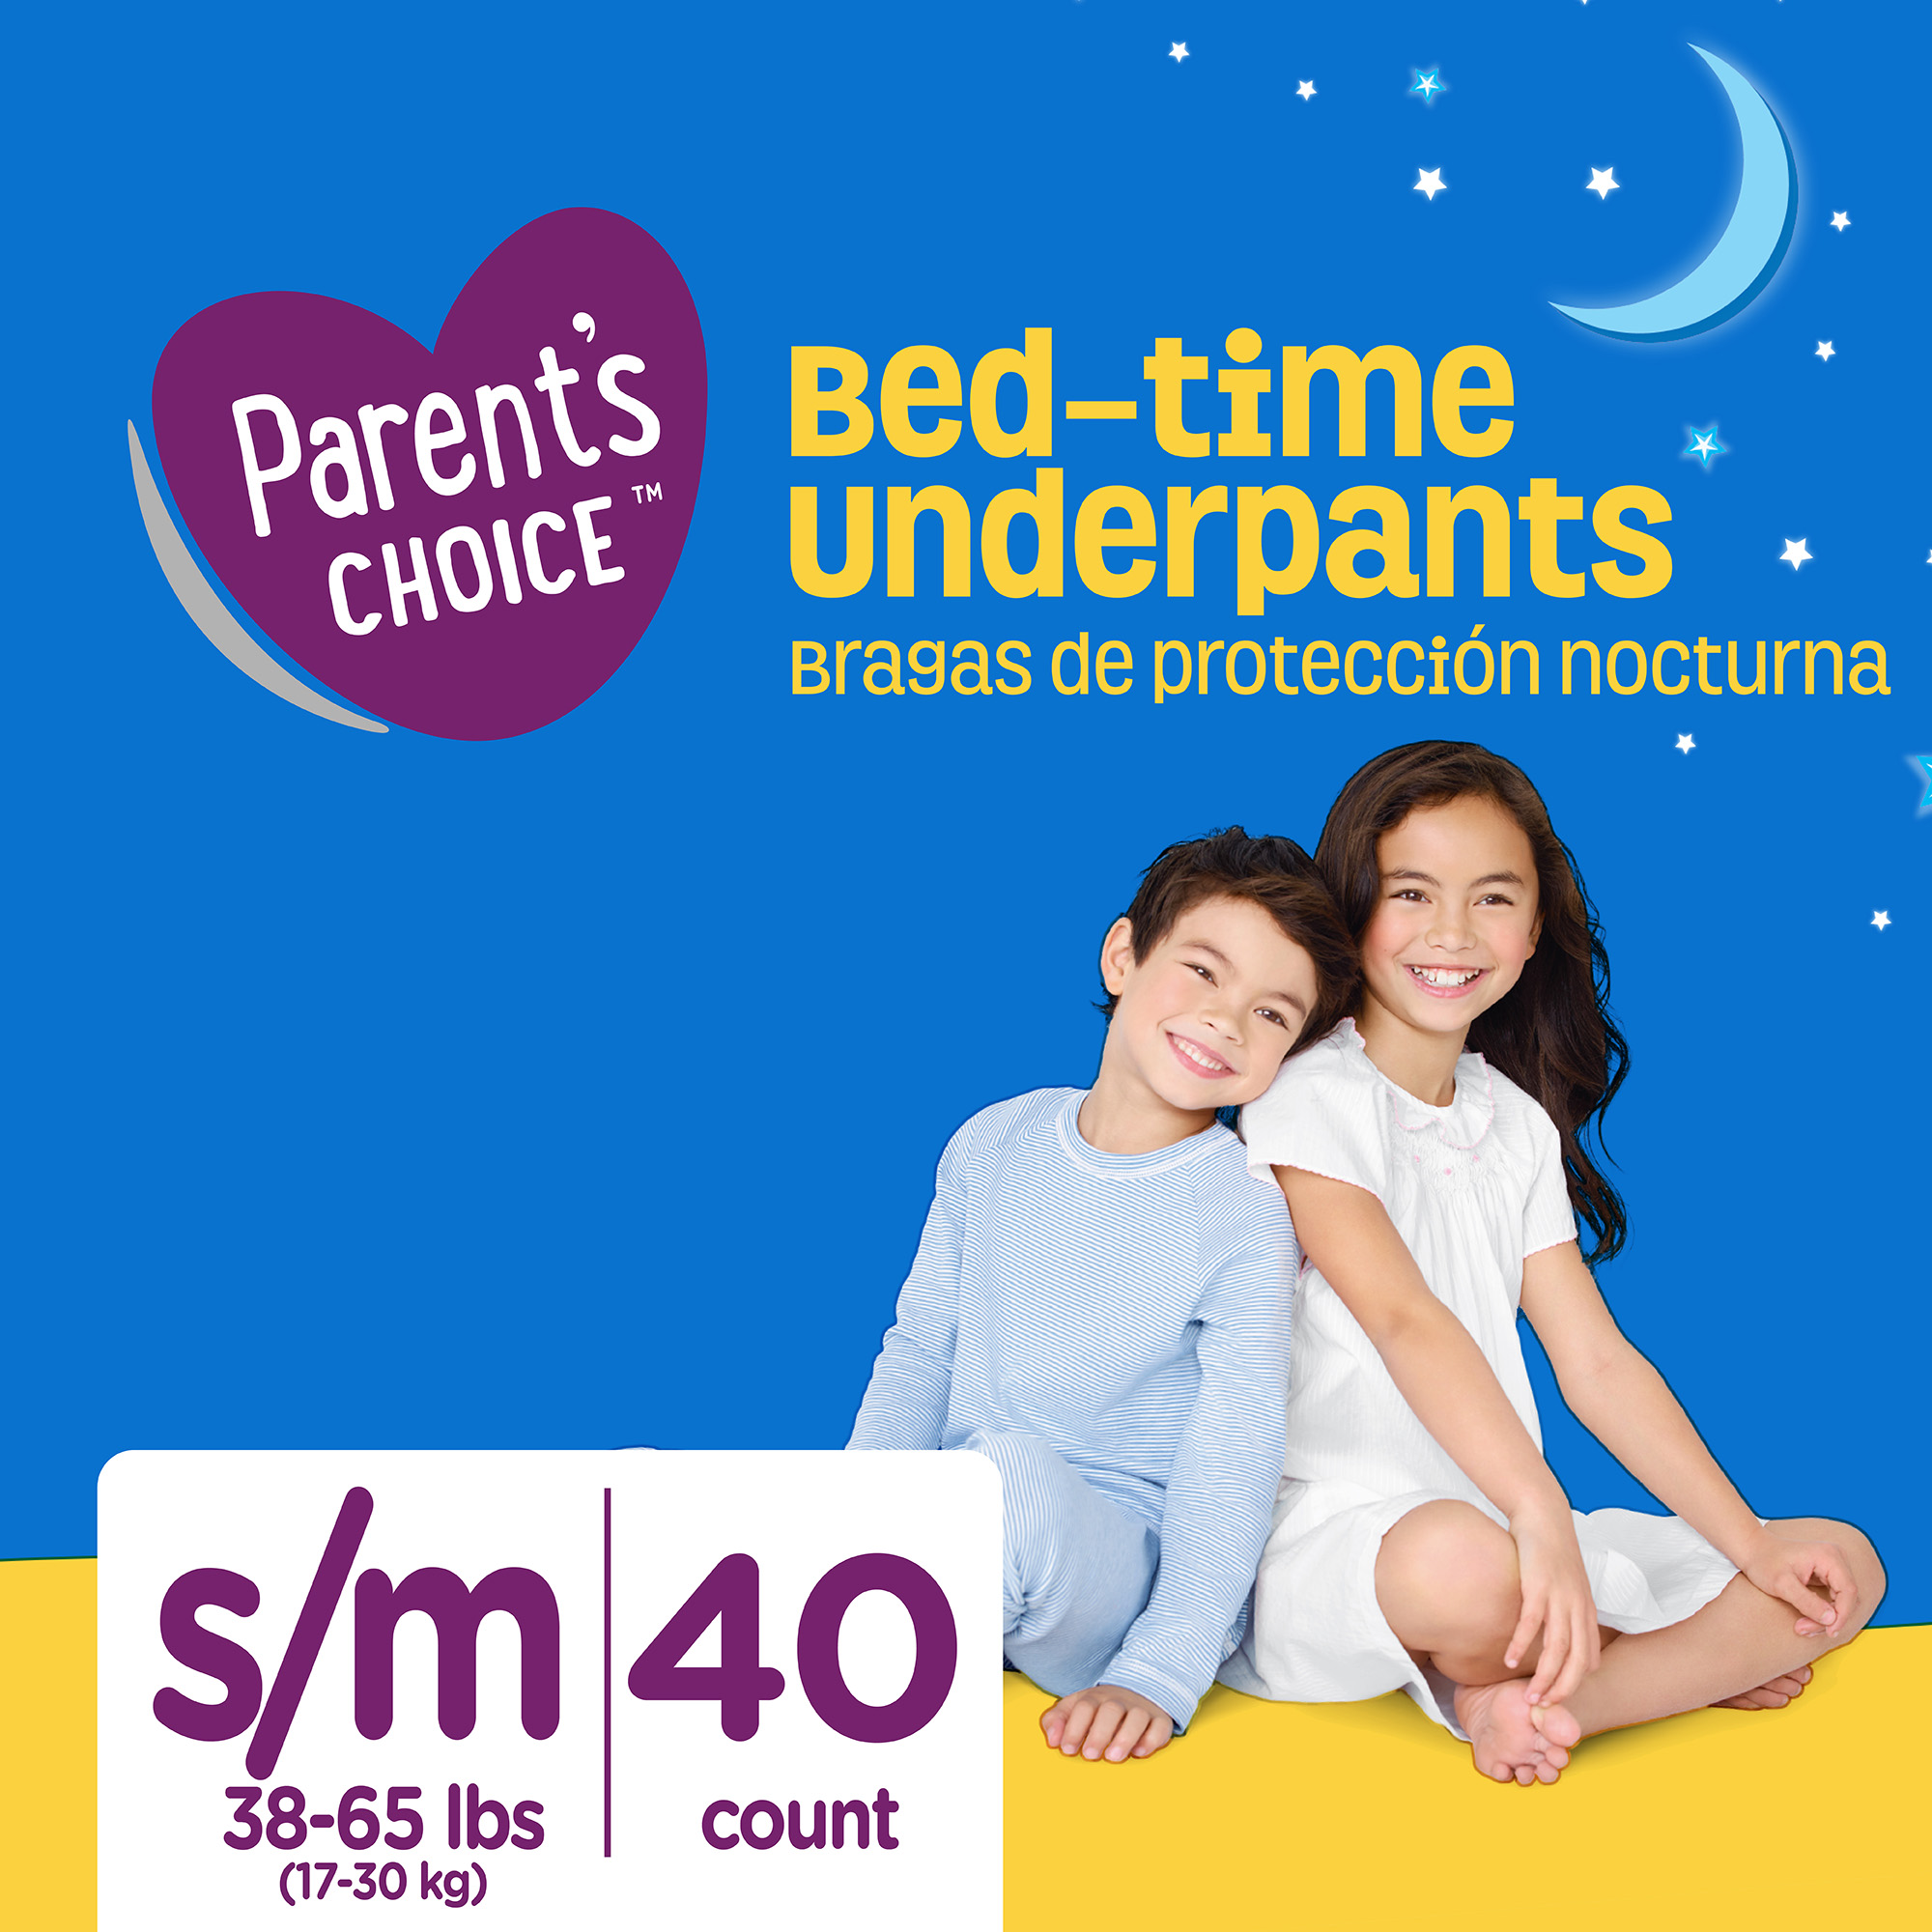 Parent's Choice Bed-Time Pull Up Underpants, S/M, 40 Count